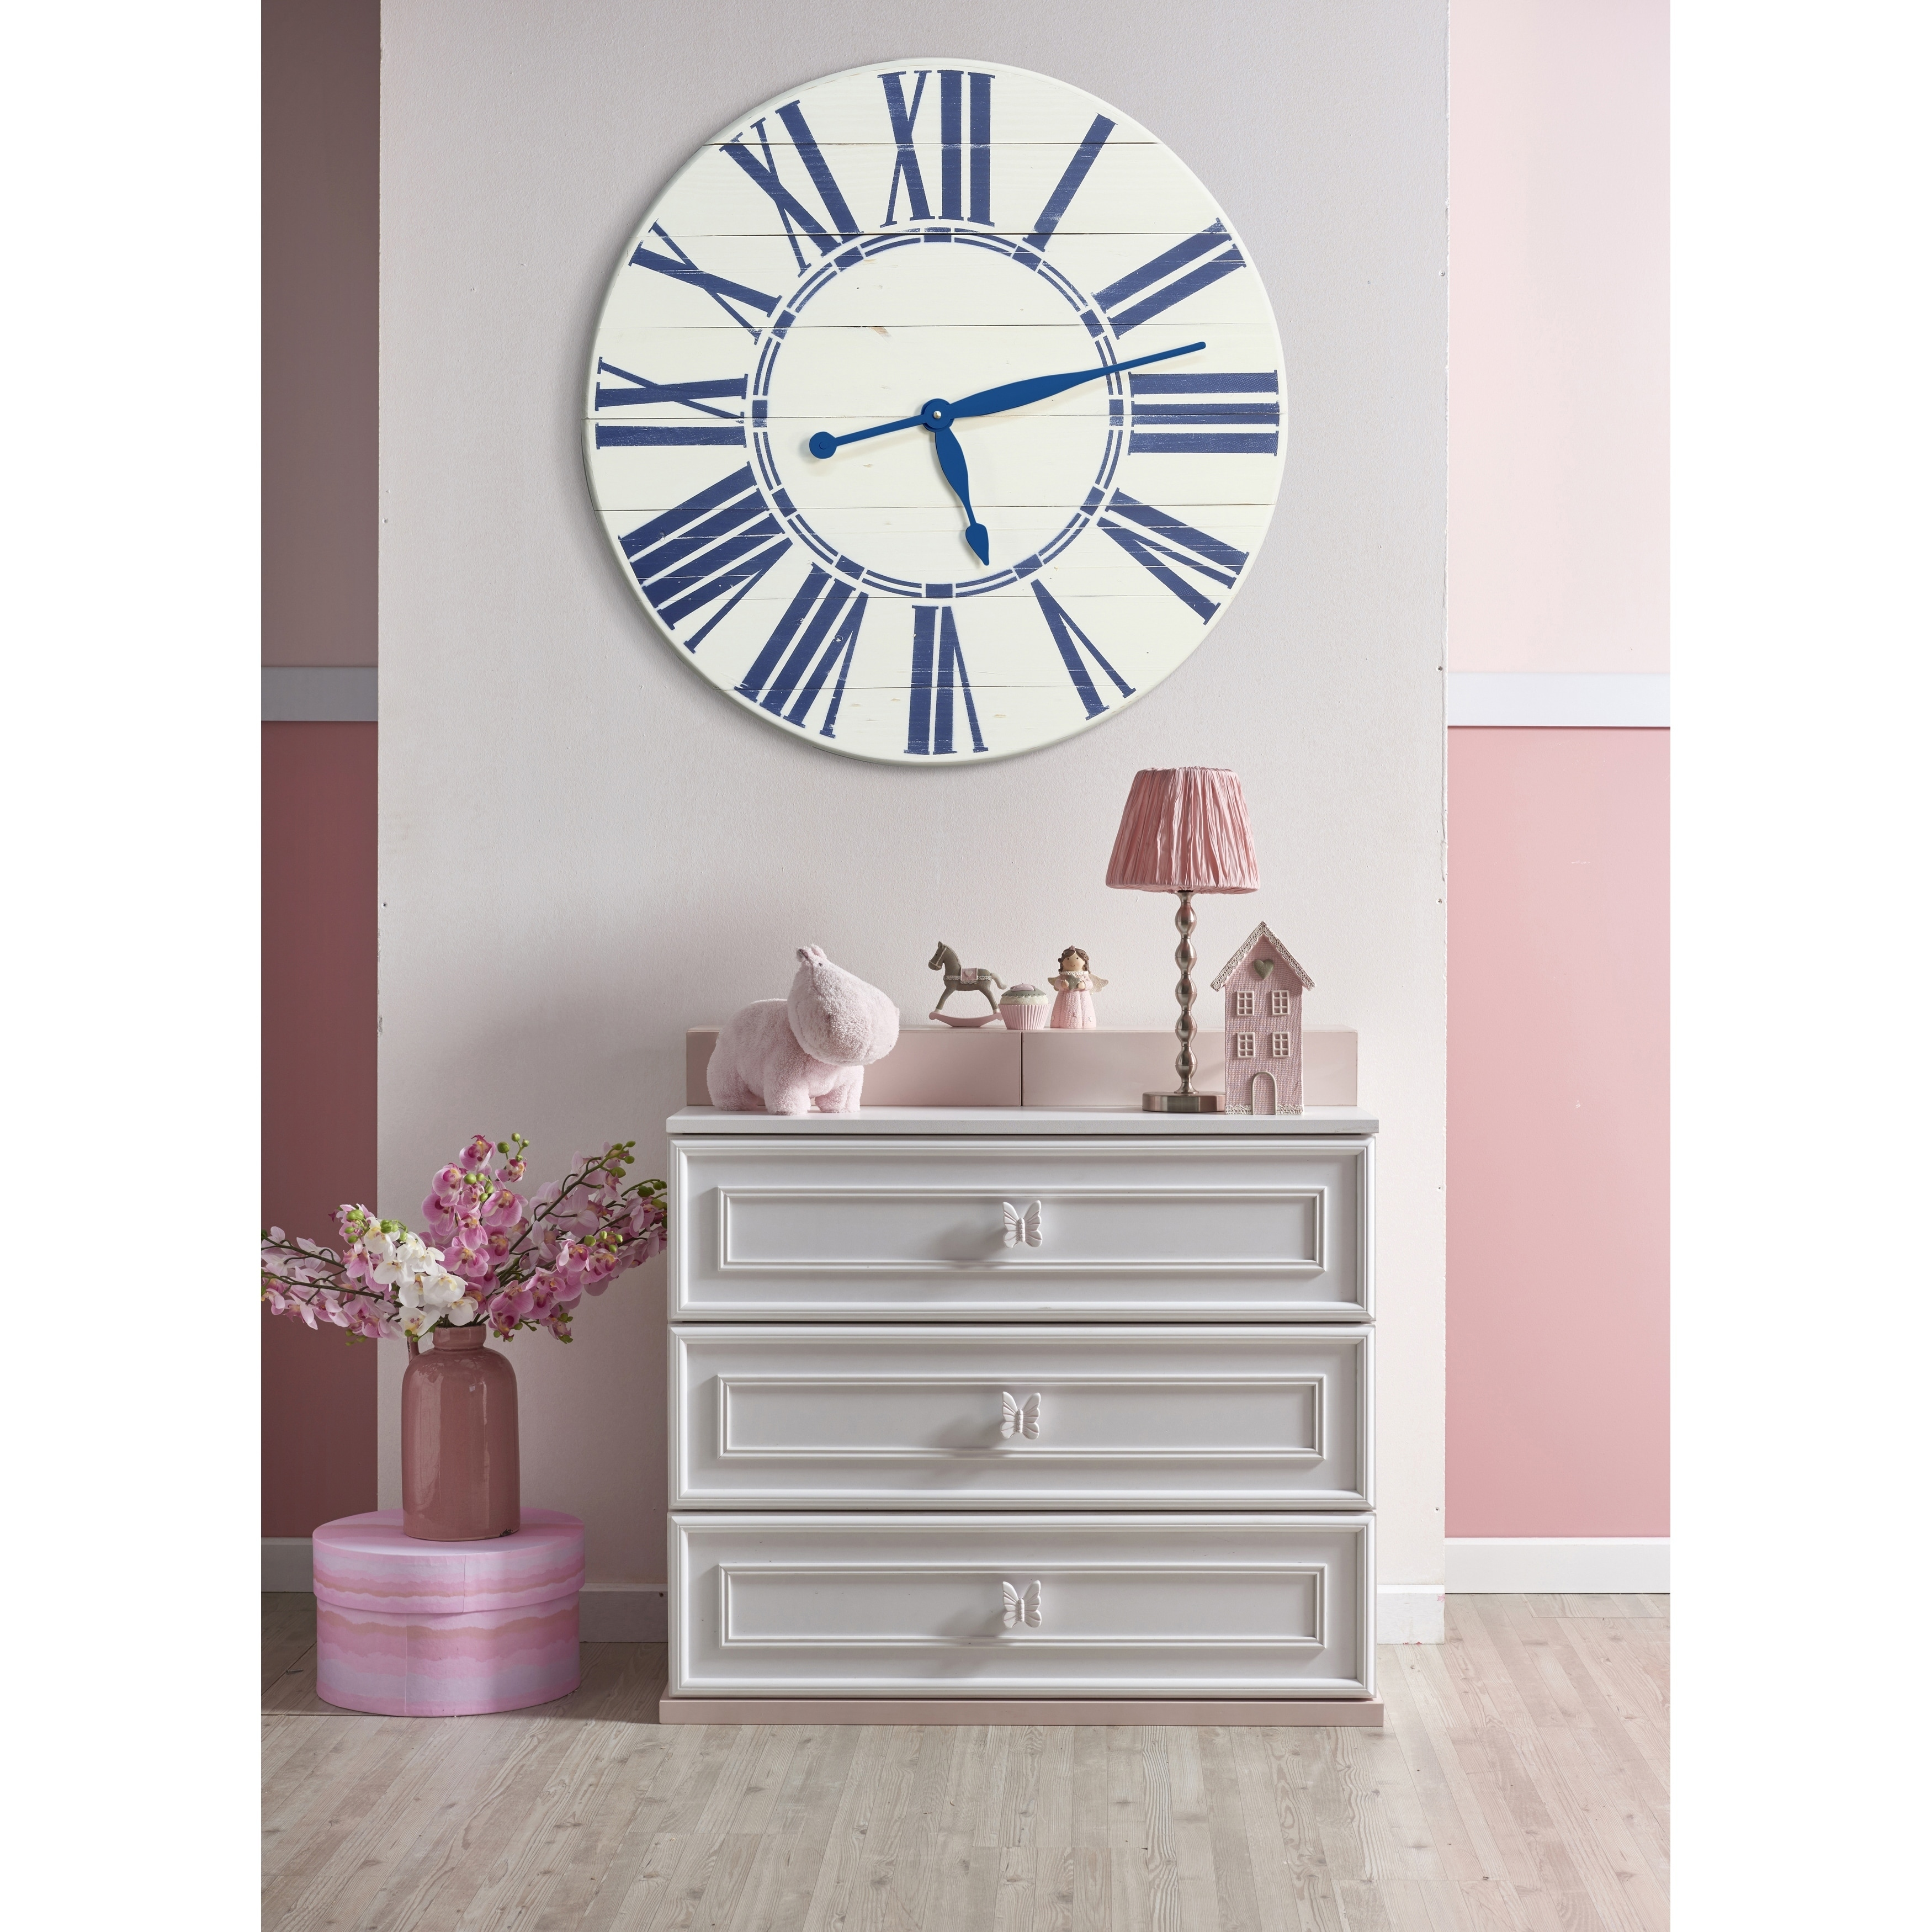 Shop navy nautical oversized wall clock free shipping today overstock com 21033930